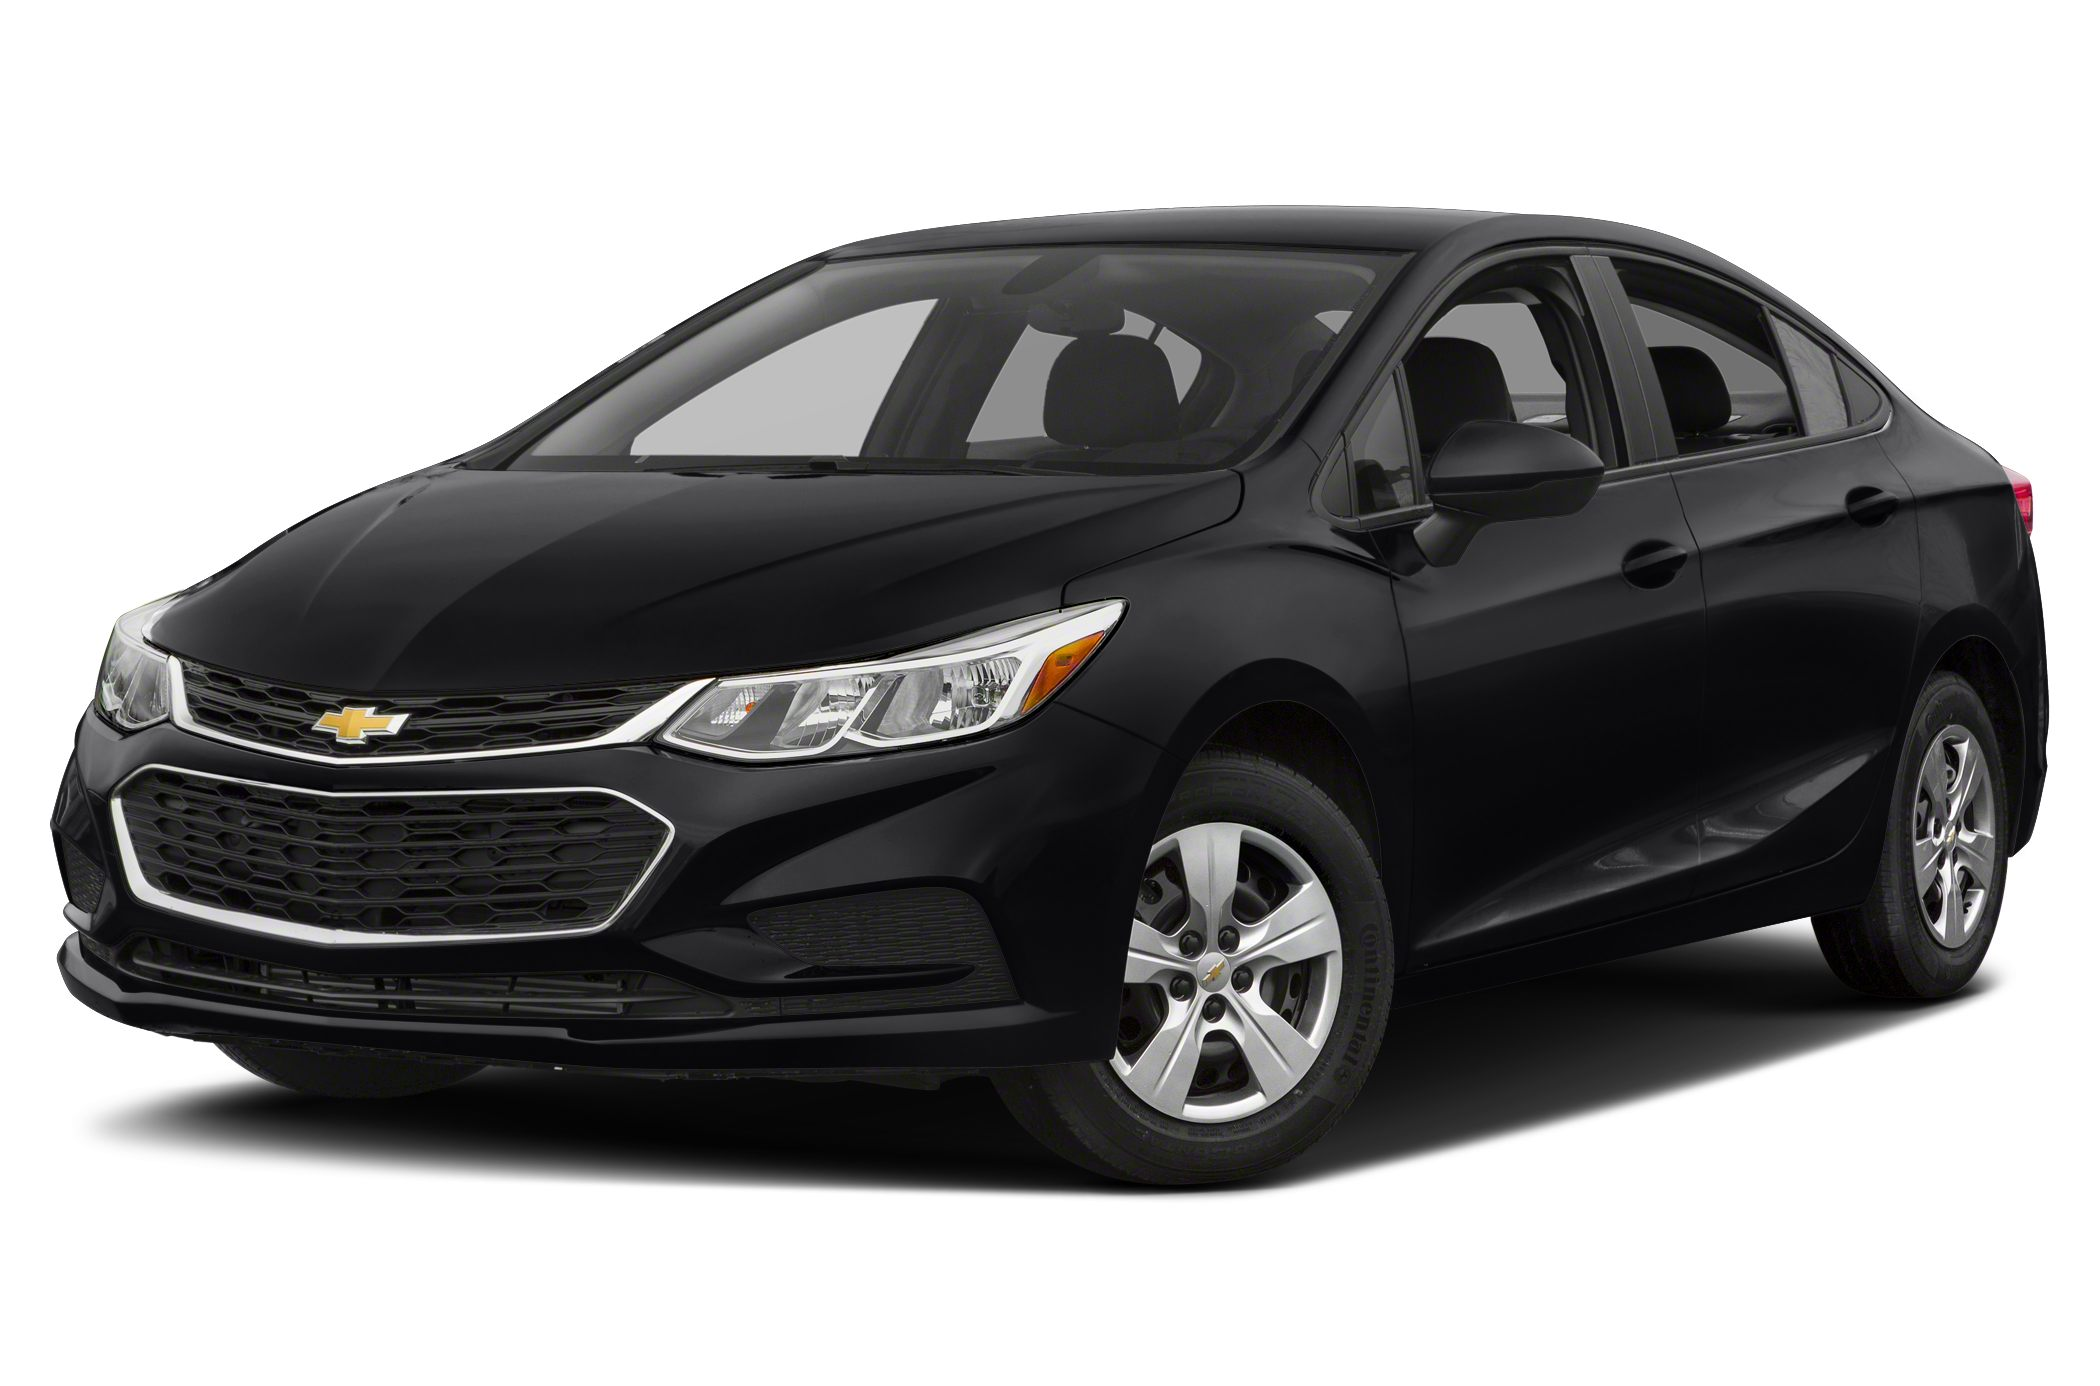 2011 chevy cruze oil change cost